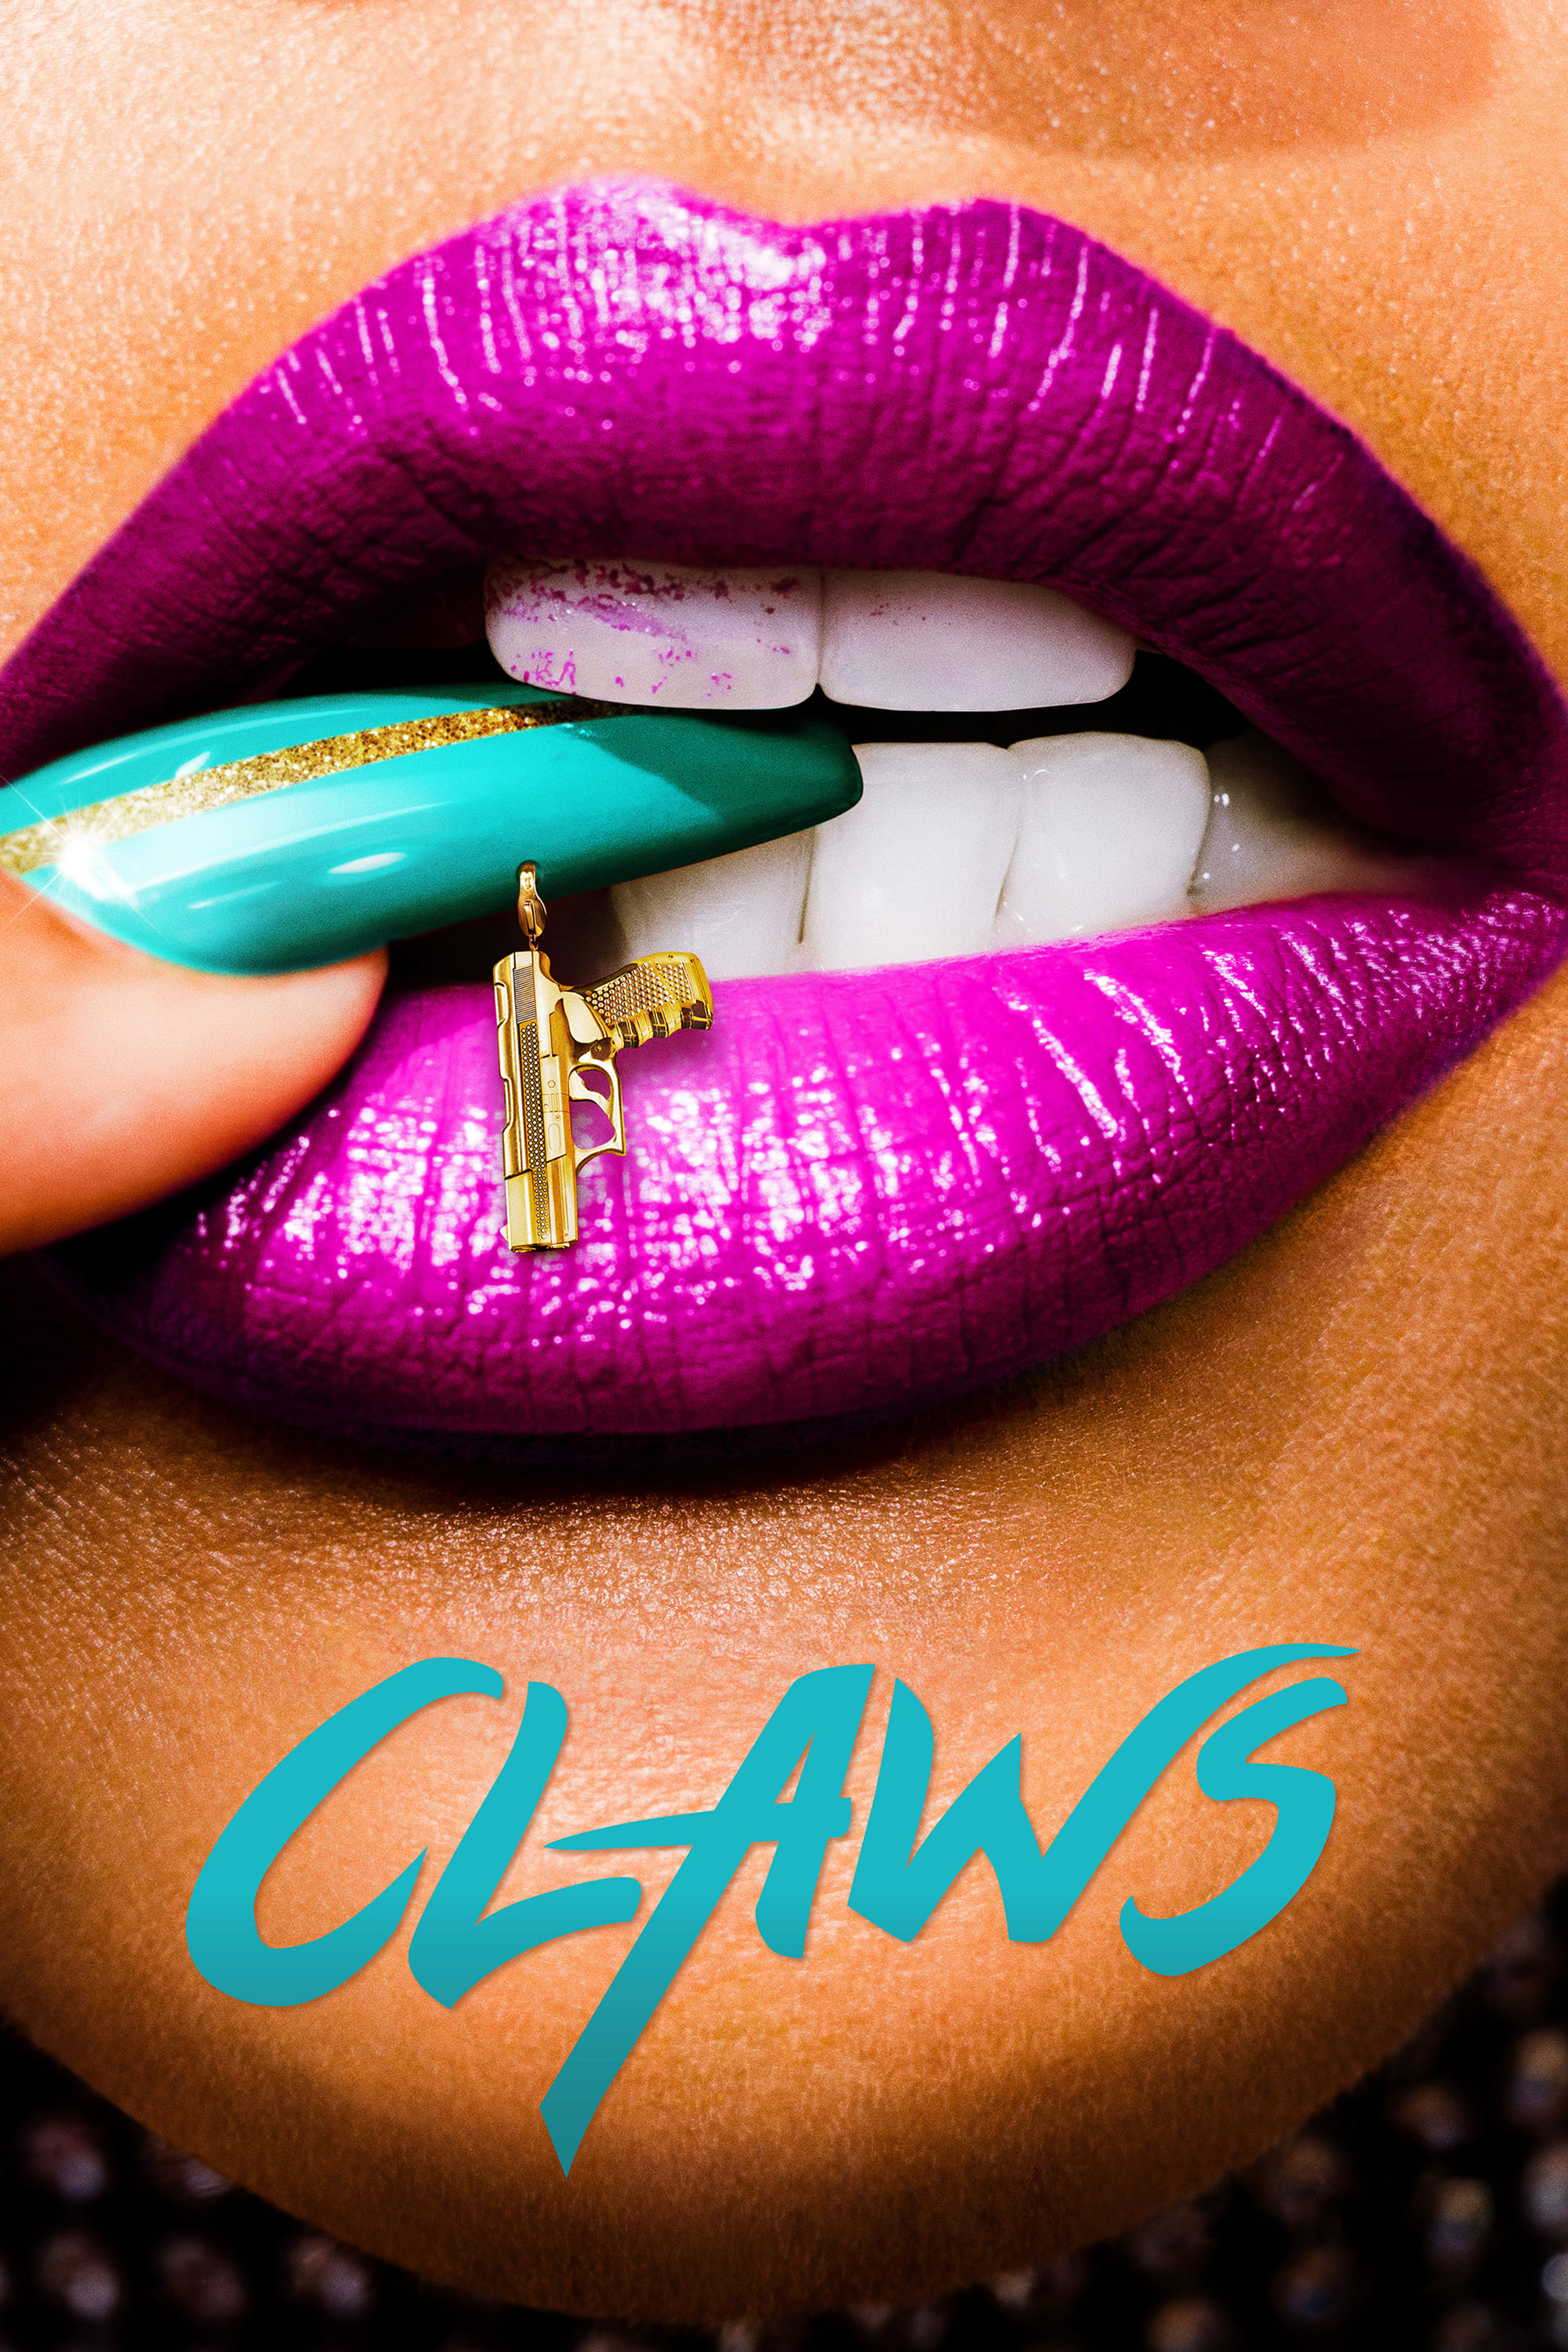 Claws Season 1 putlocker 4k